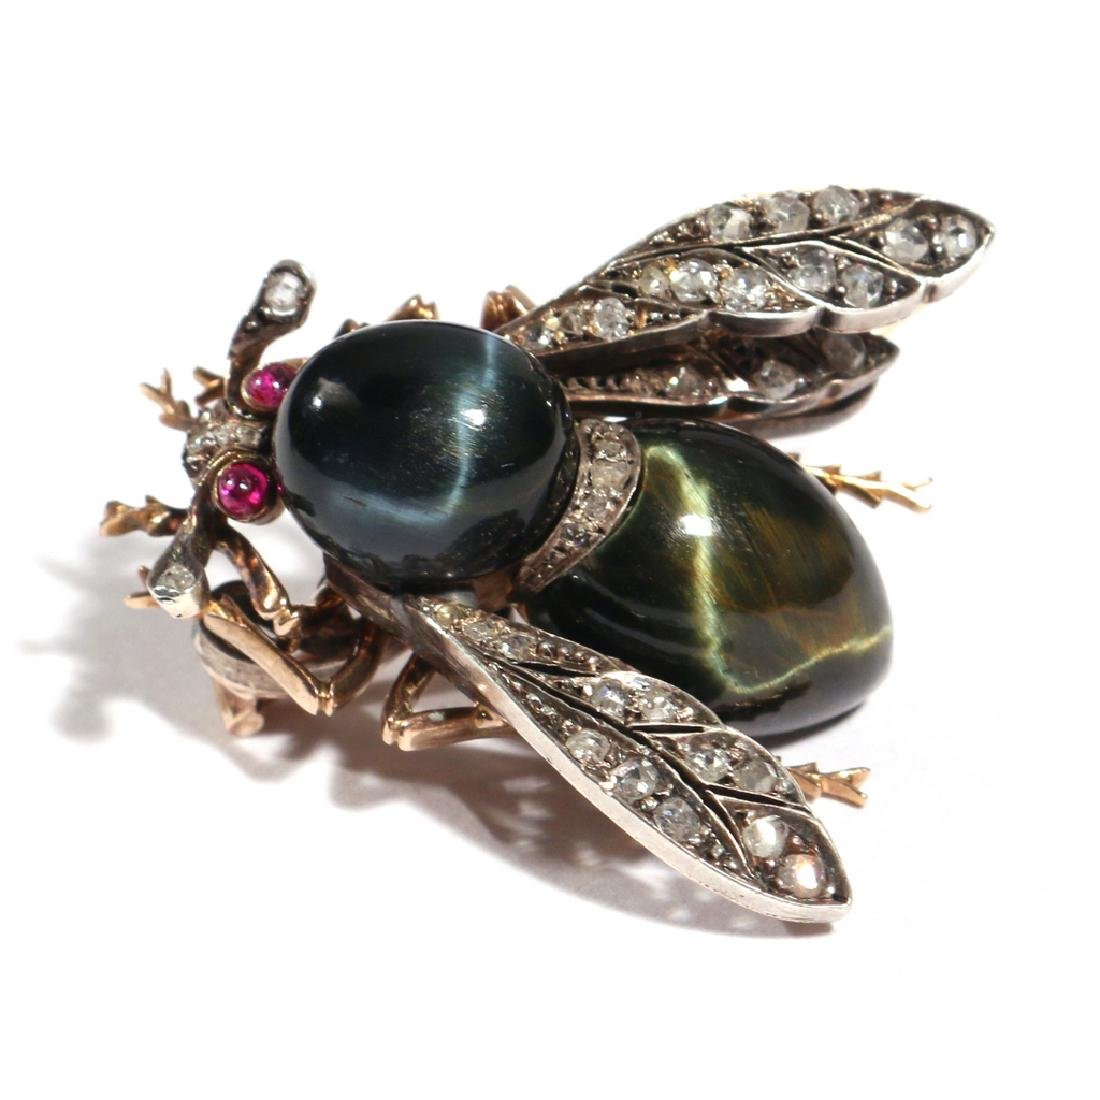 PHENOMENAL FRENCH NAPOLEONIC BEE PENDANT PIN - 5